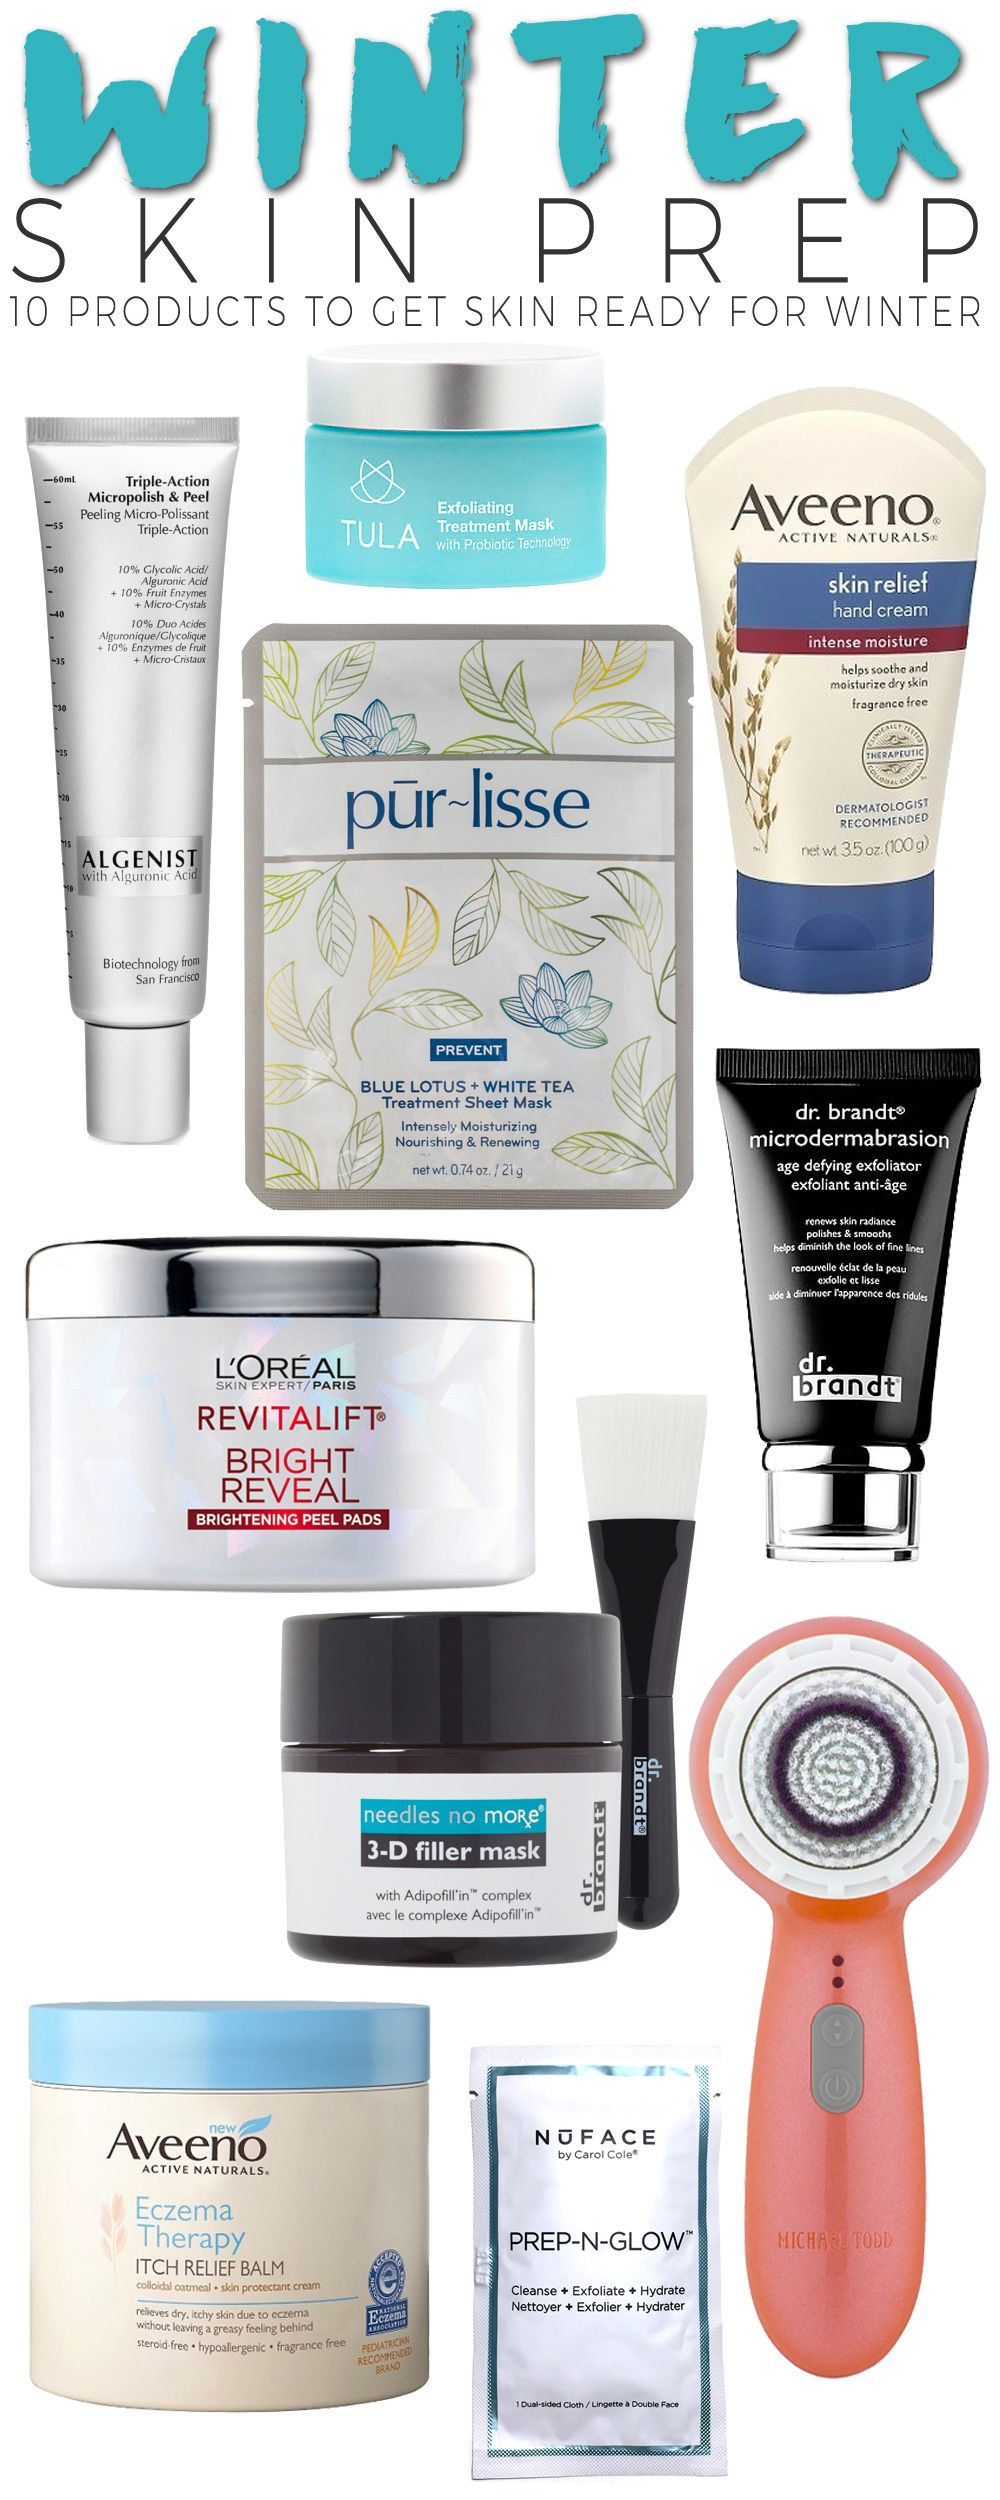 10 Products to Get Skin Ready for Winter.